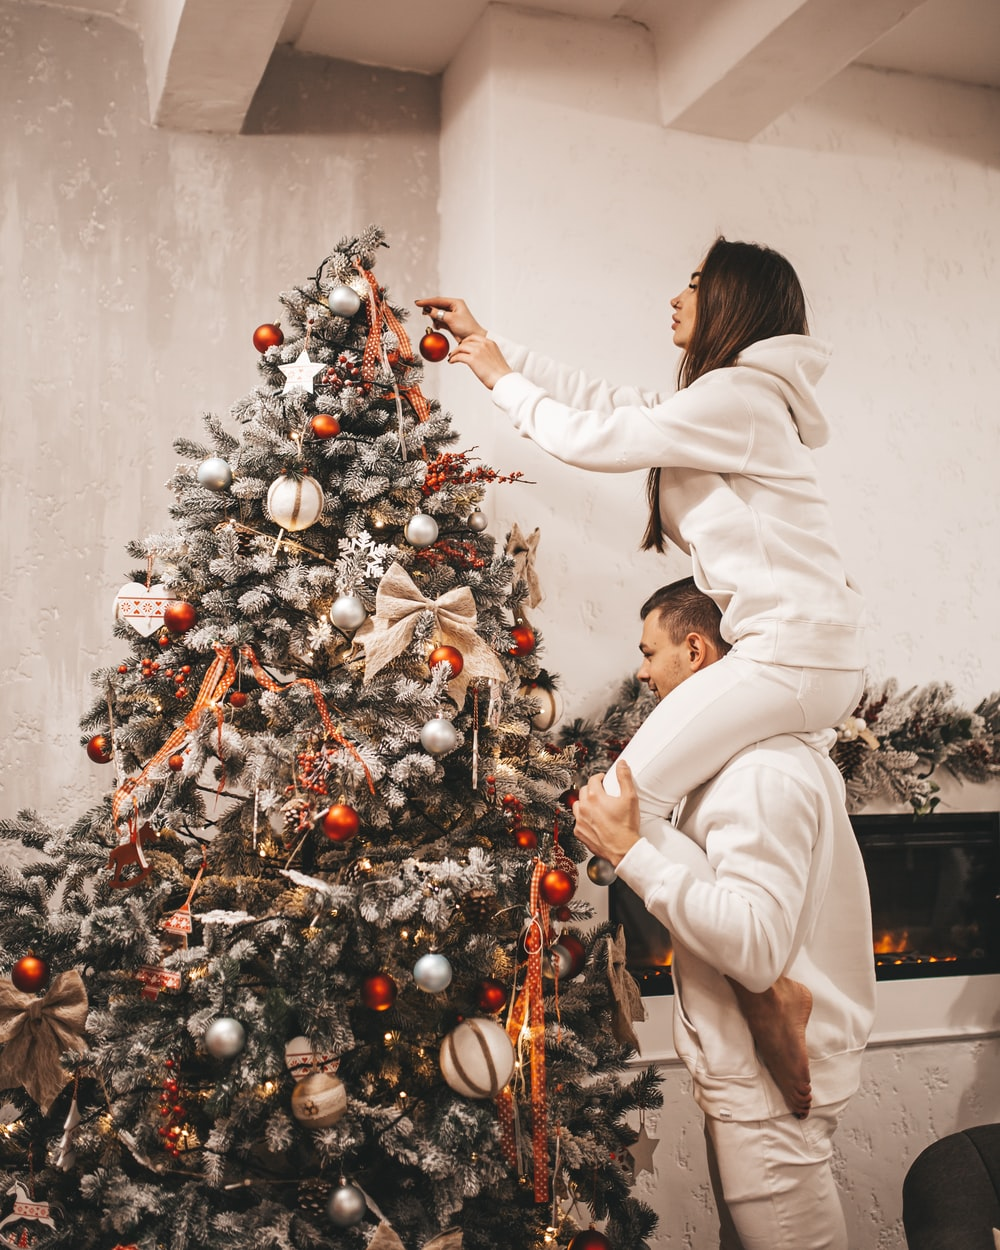 woman putting bauble on Christmas tree